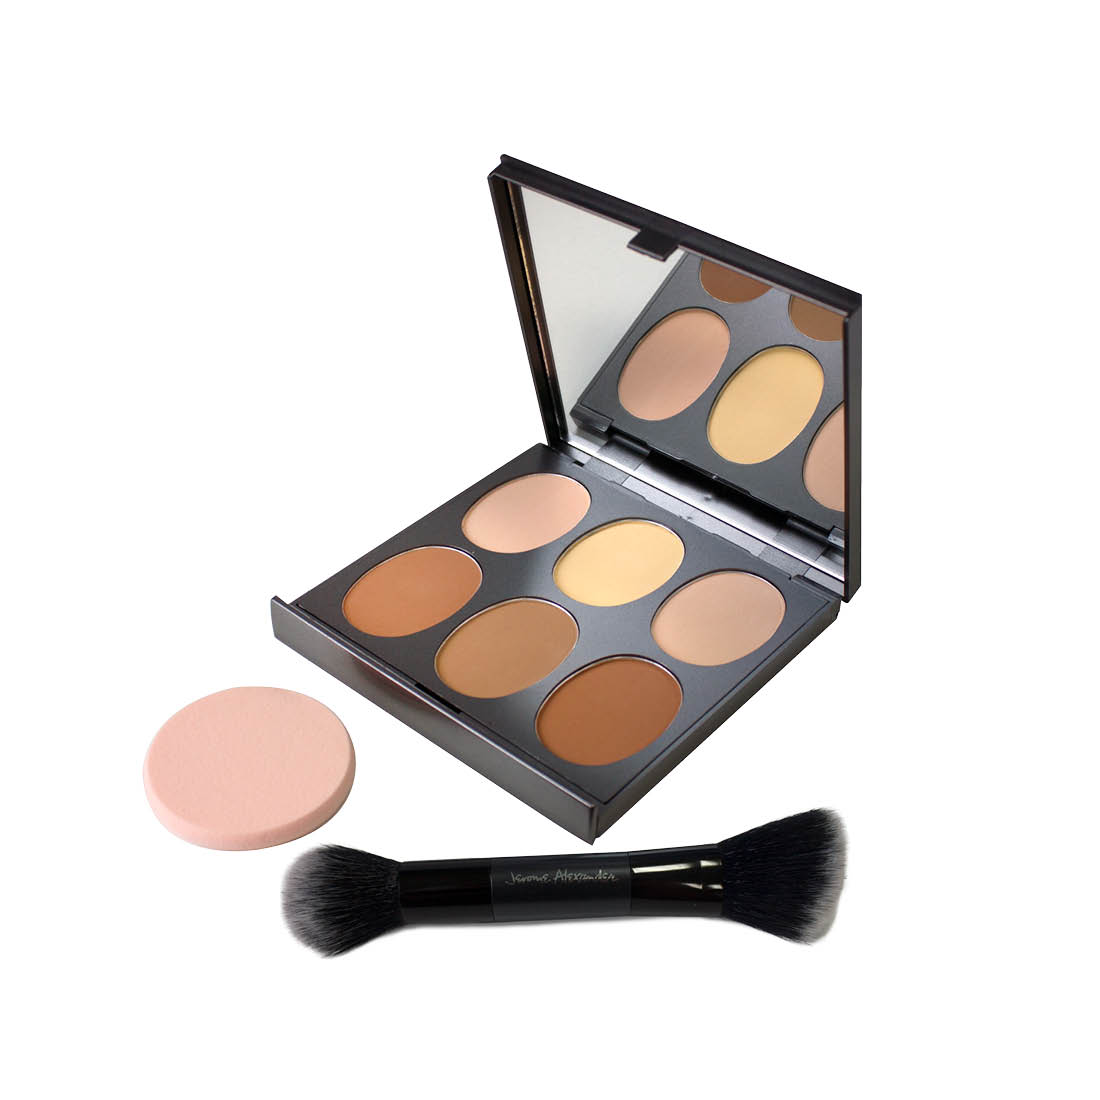 An image of Magic Minerals Contour Kit by Jerome Alexander